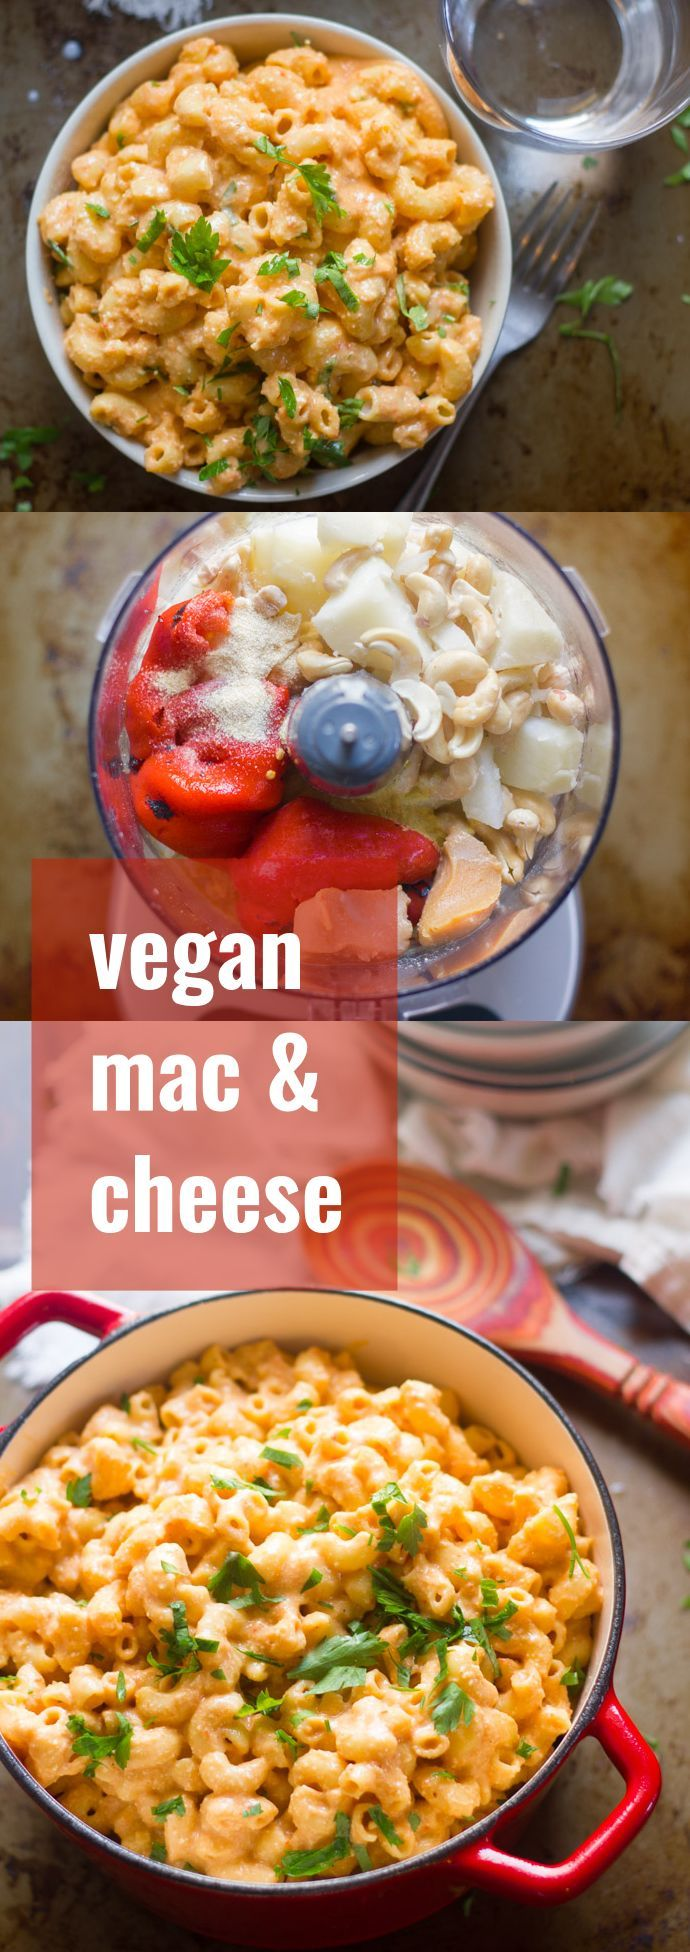 This creamy vegan mac and cheese is made with pasta smothered in a creamy, flavor-packed but dairy-free sauce. A guaranteed hit with kids and adults alike!